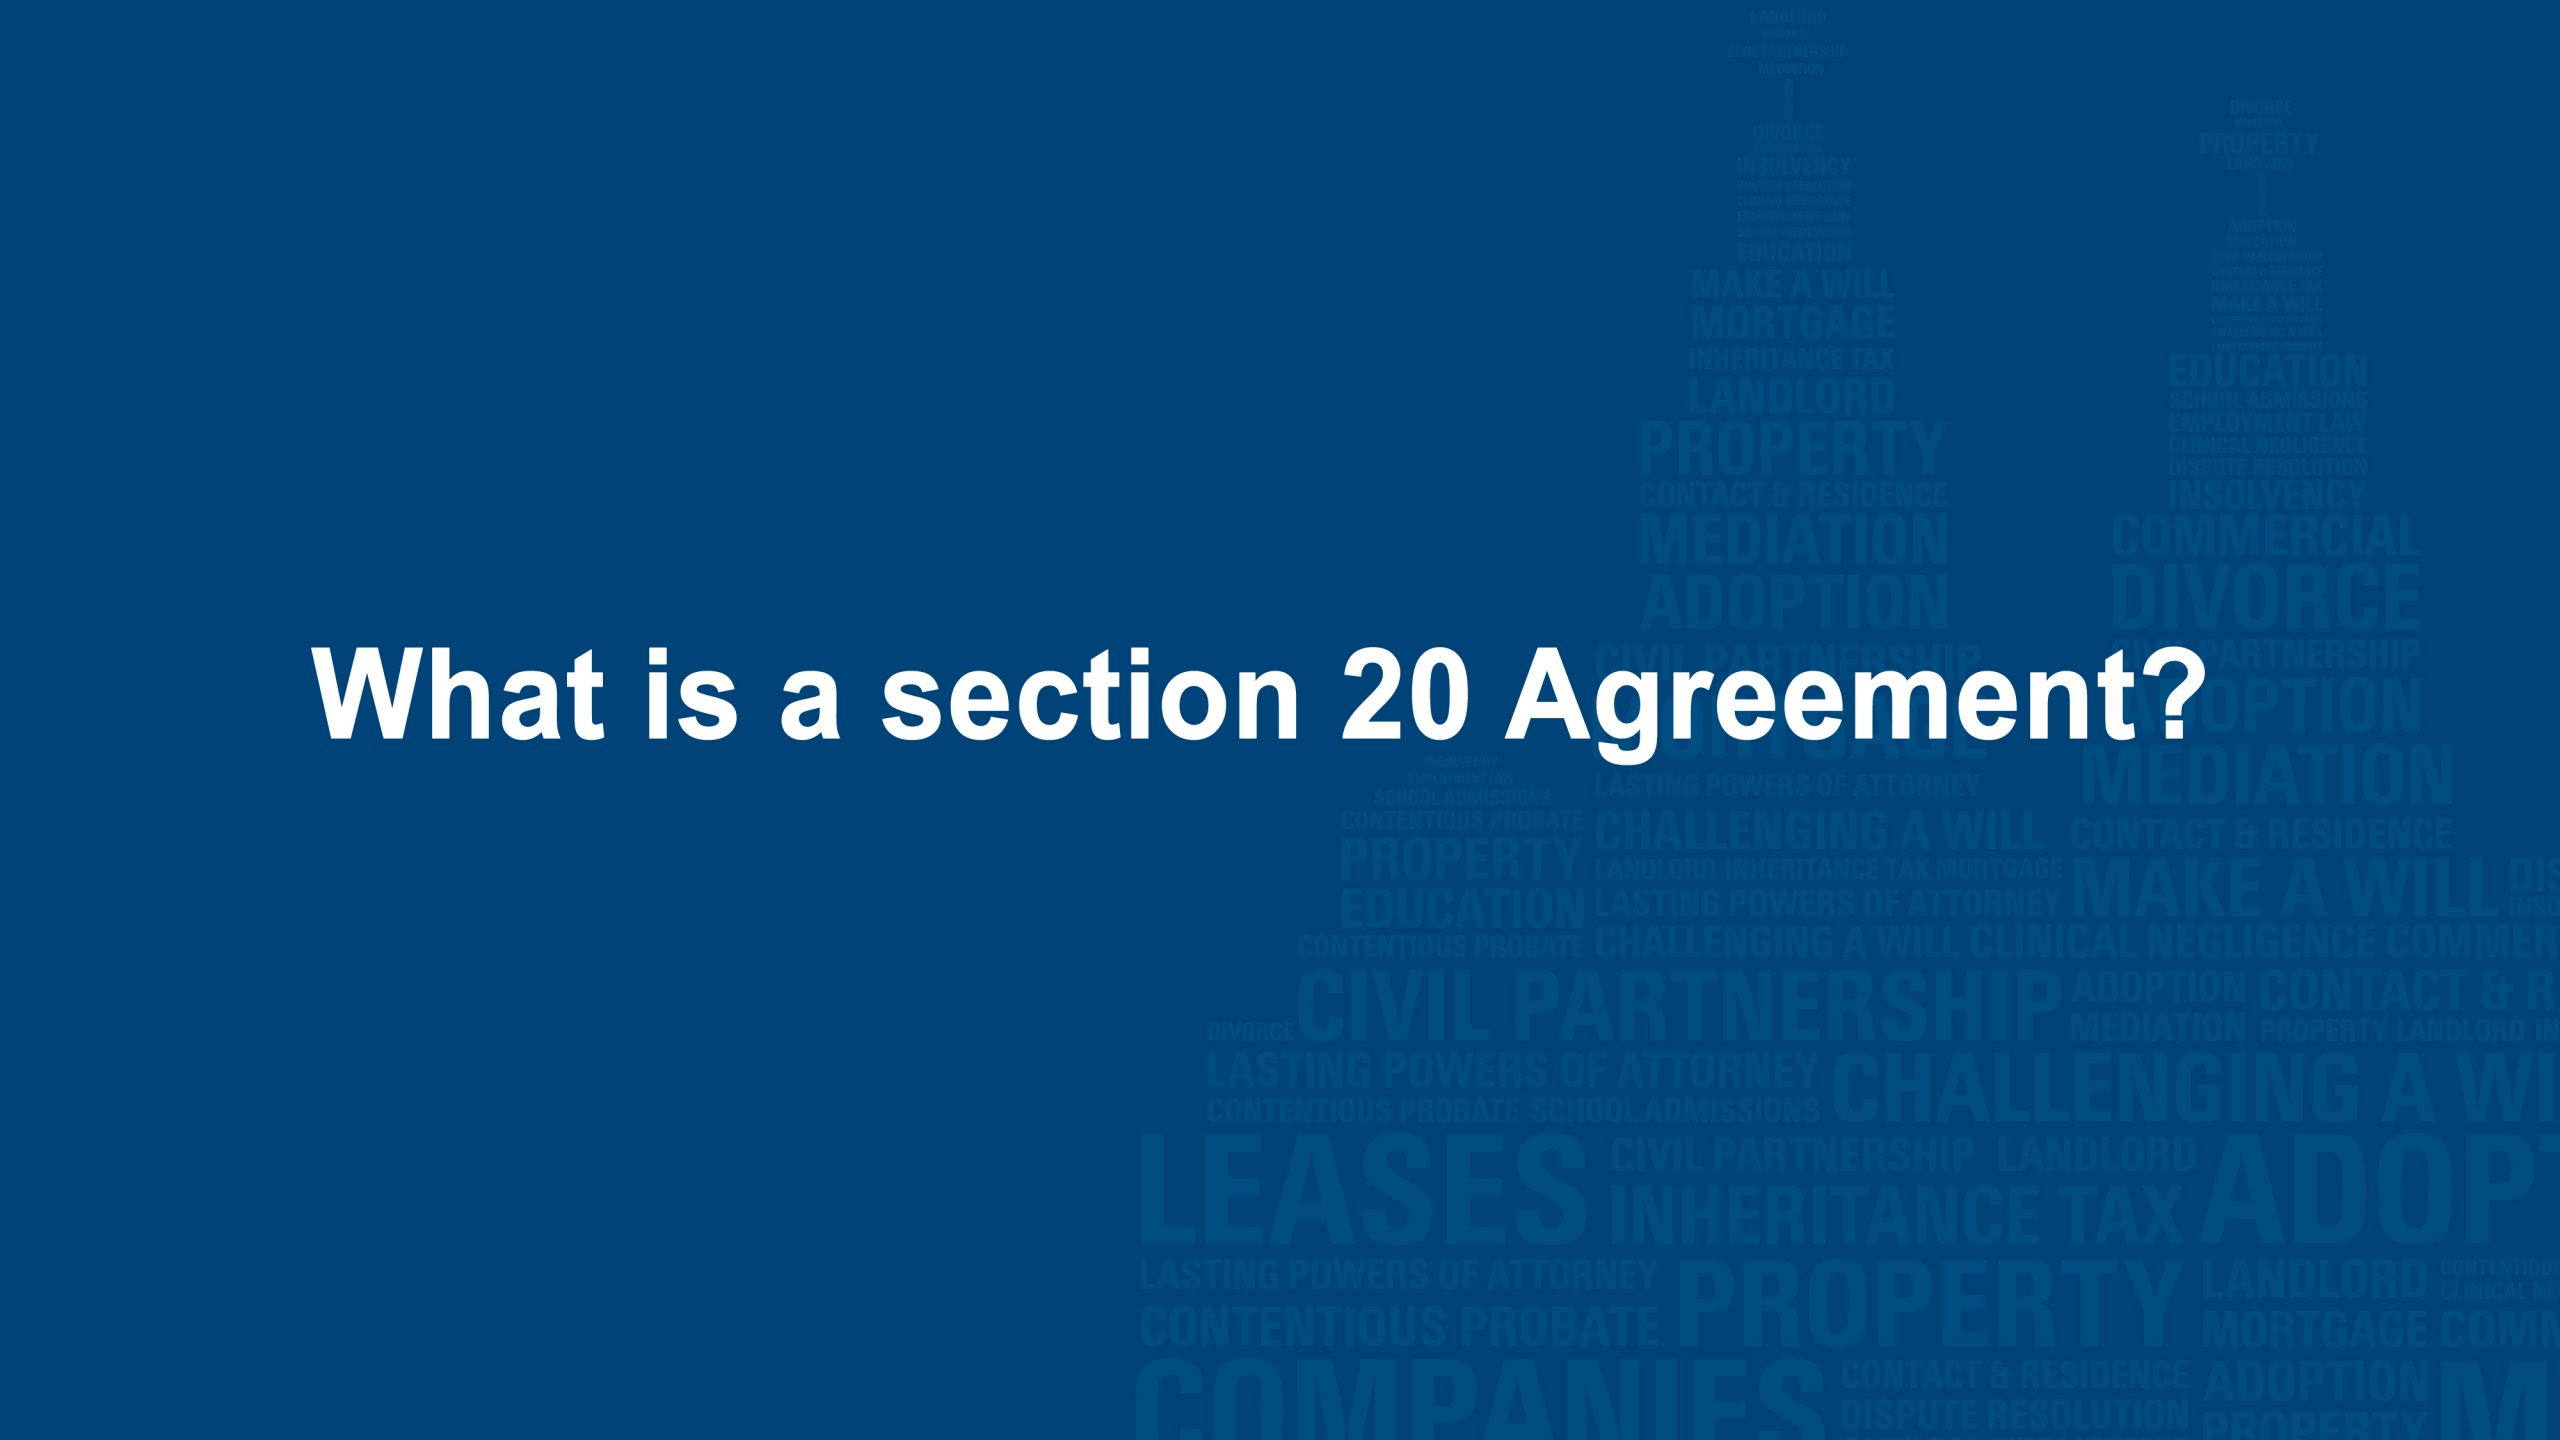 What is a section 20 Agreement